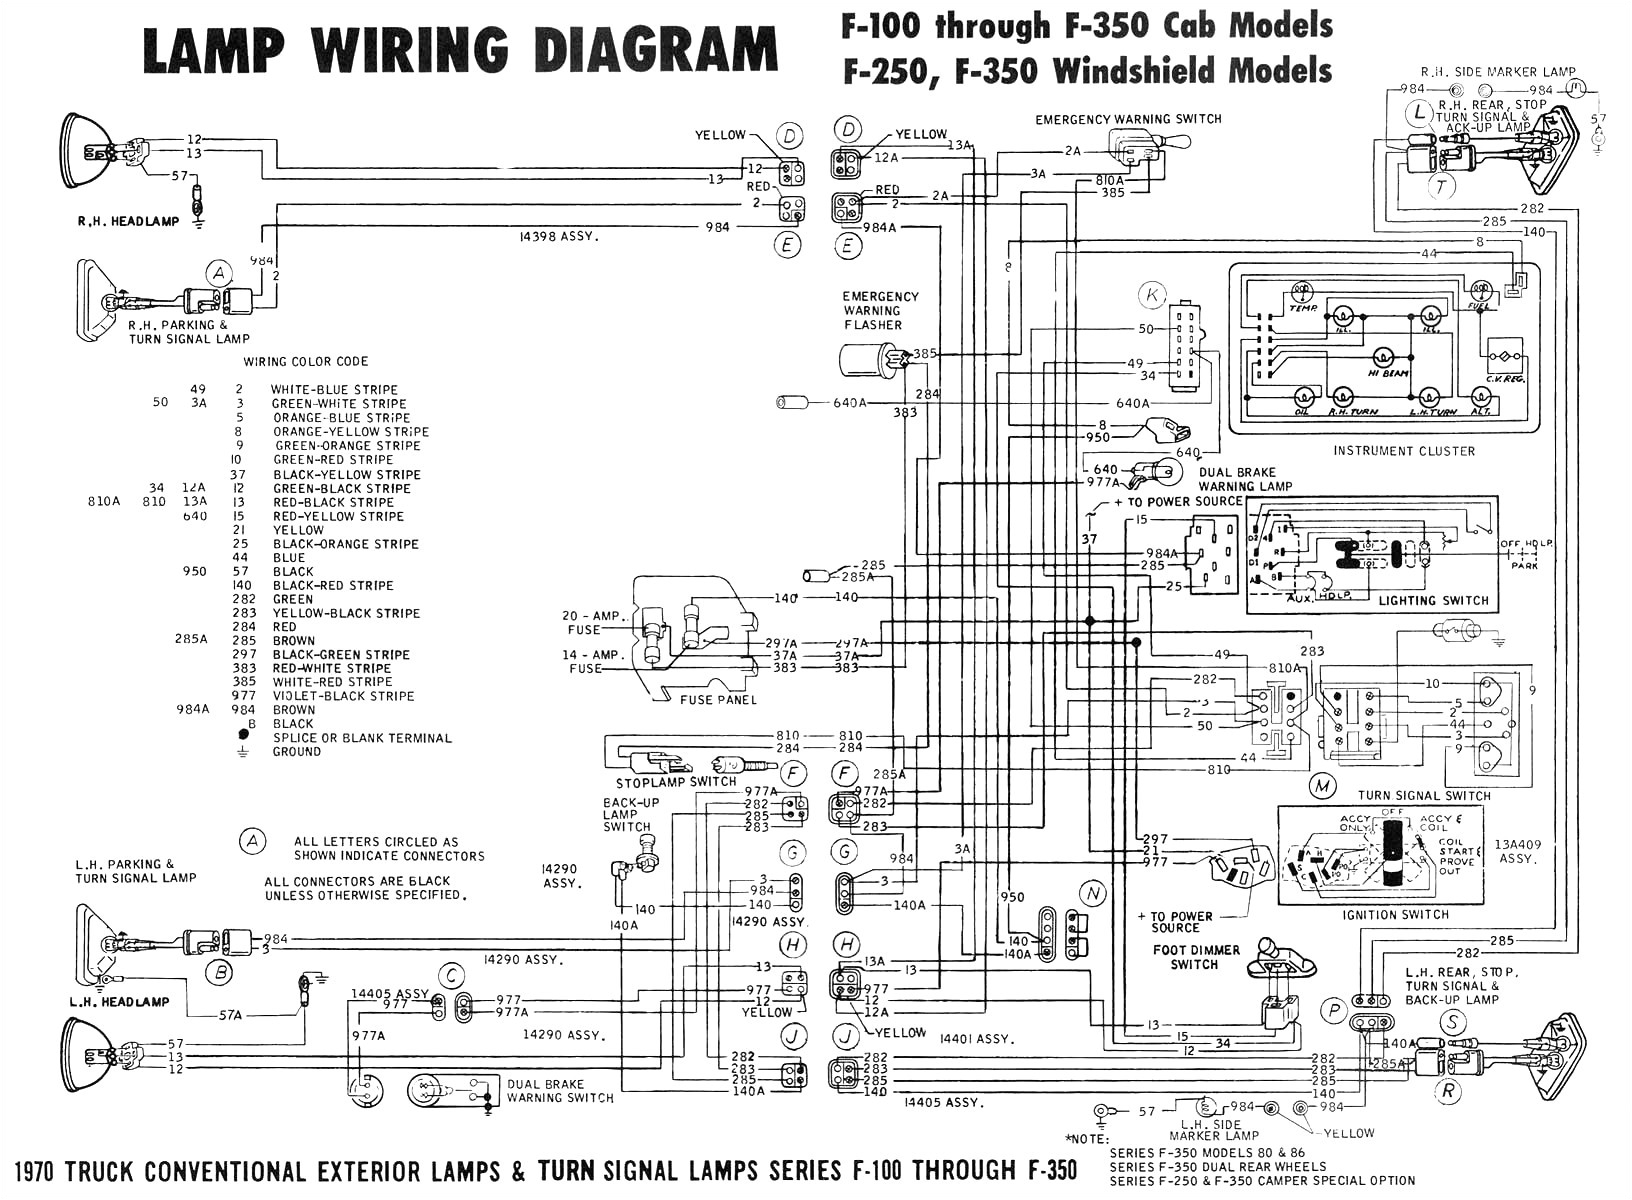 1987 ford f600 wiring diagram wiring diagram sample what wires match up when wiring a sony xplod to a 1987 1988 ford car